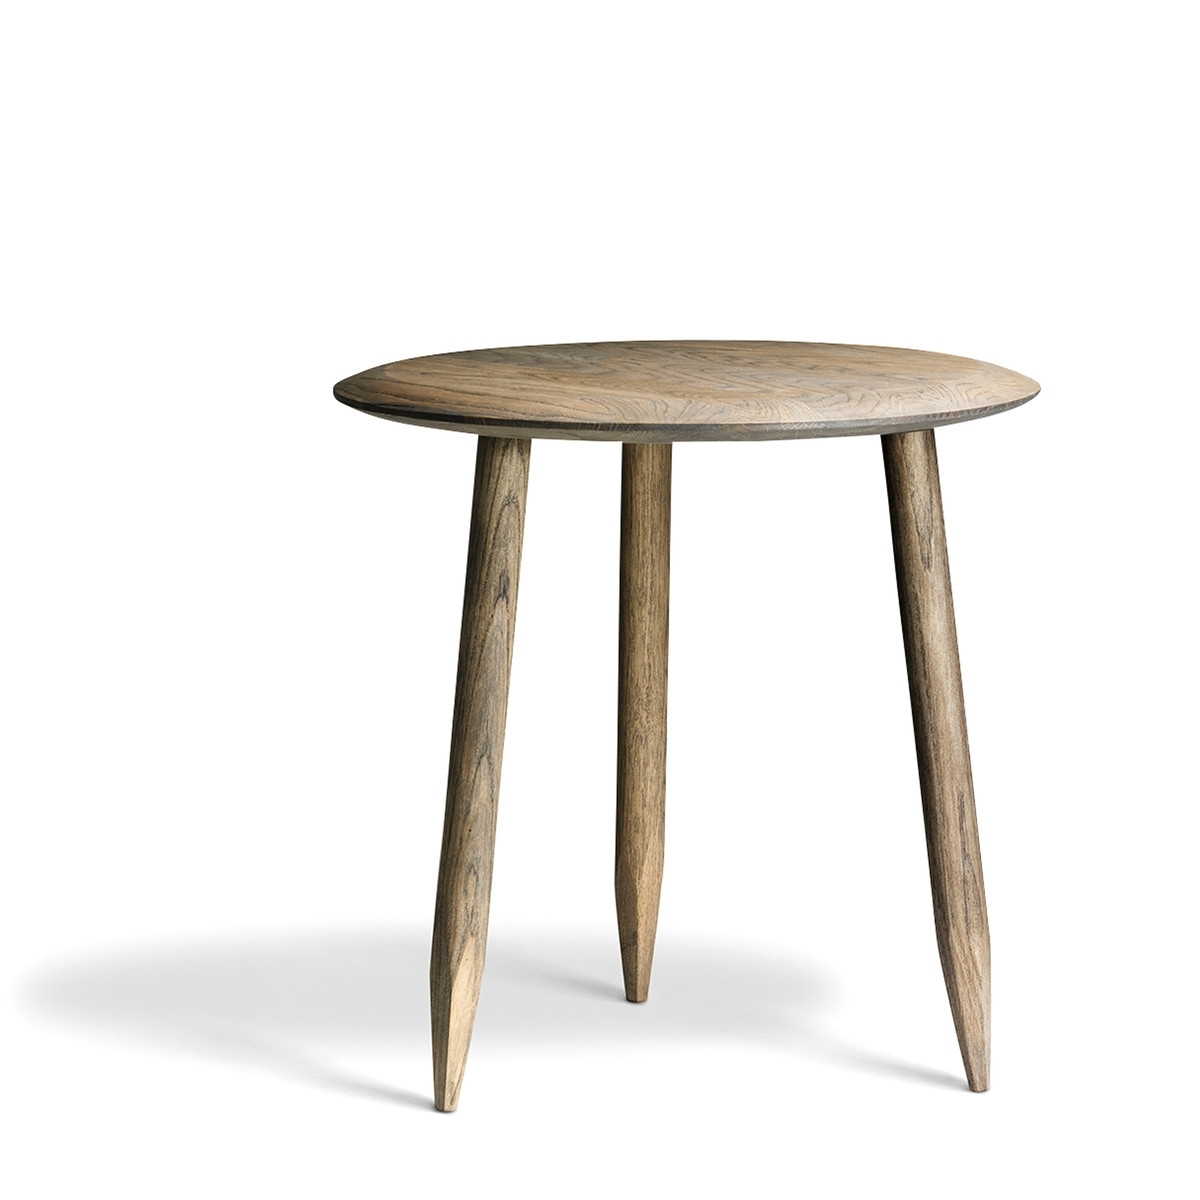 Most Current Smoked Oak Side Tables With Regard To Hoof Table Sw1&tradition In The Shop (View 4 of 20)